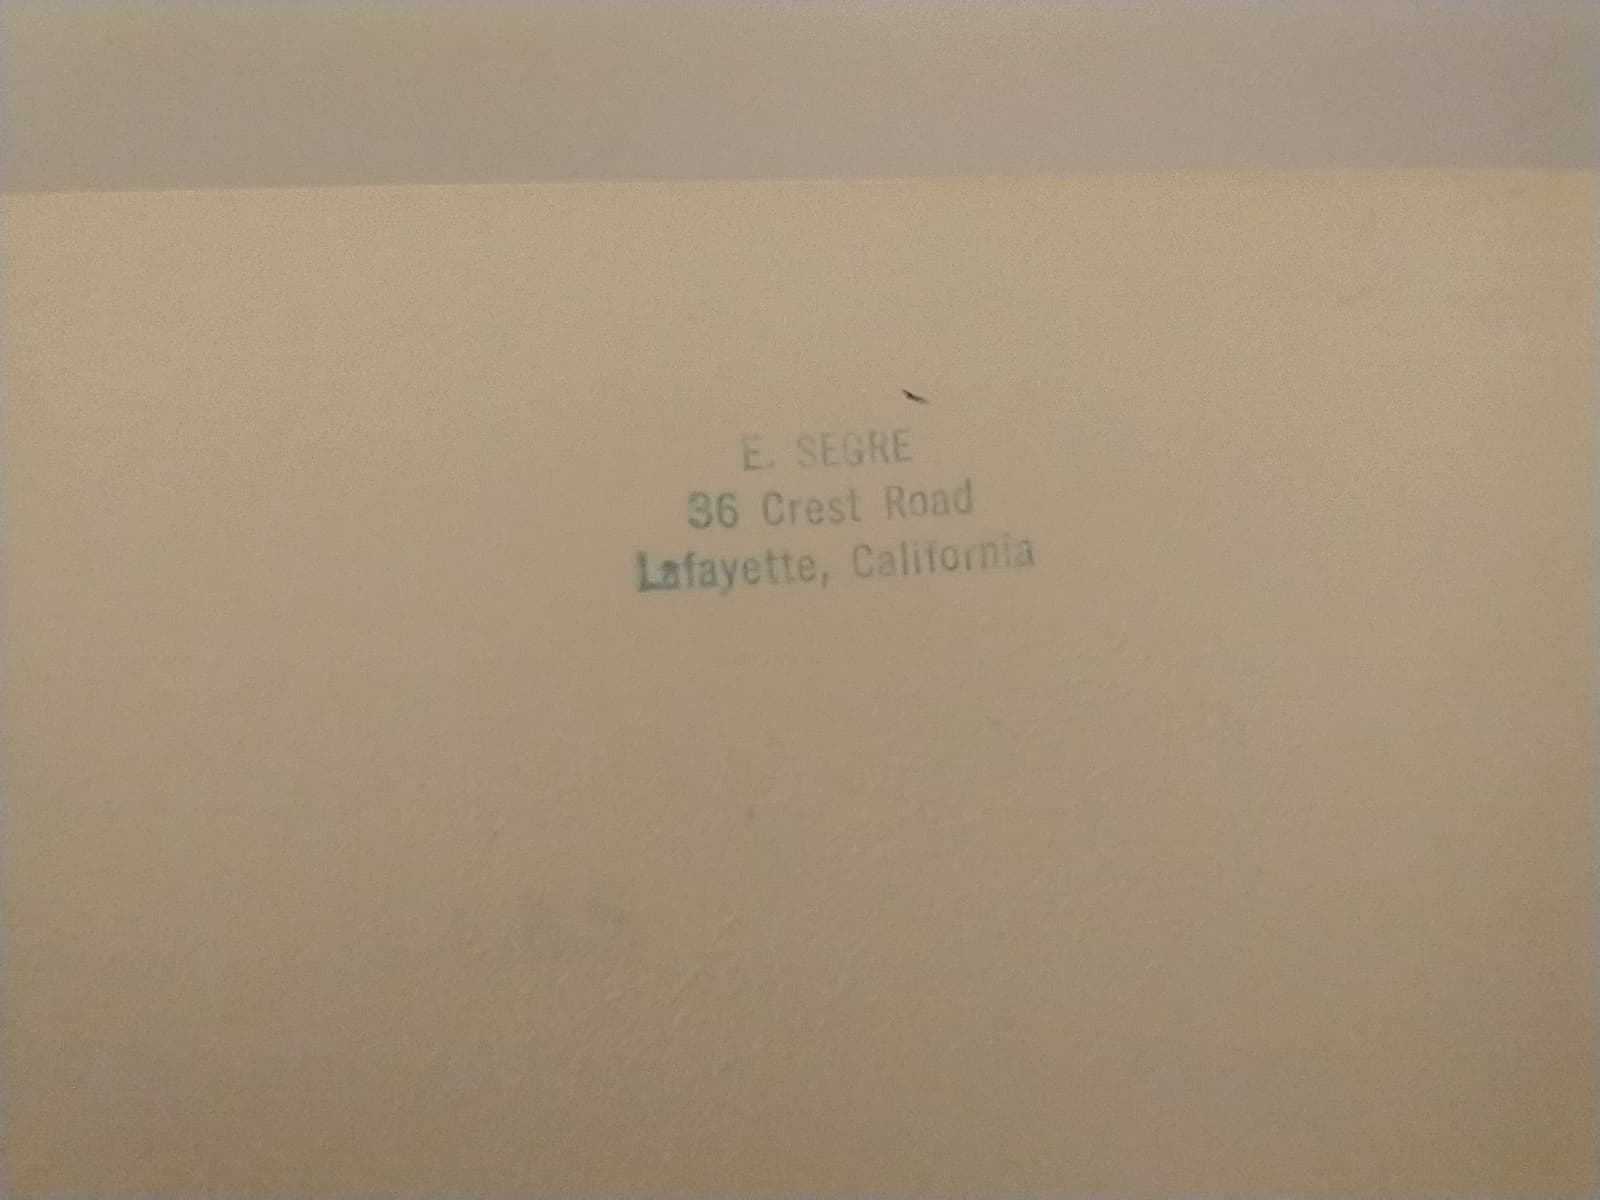 """Book owner's stamp with Emilio Segre corrected to """"Segrè."""" Address reads 36 Crest Road, Lafayette, California"""